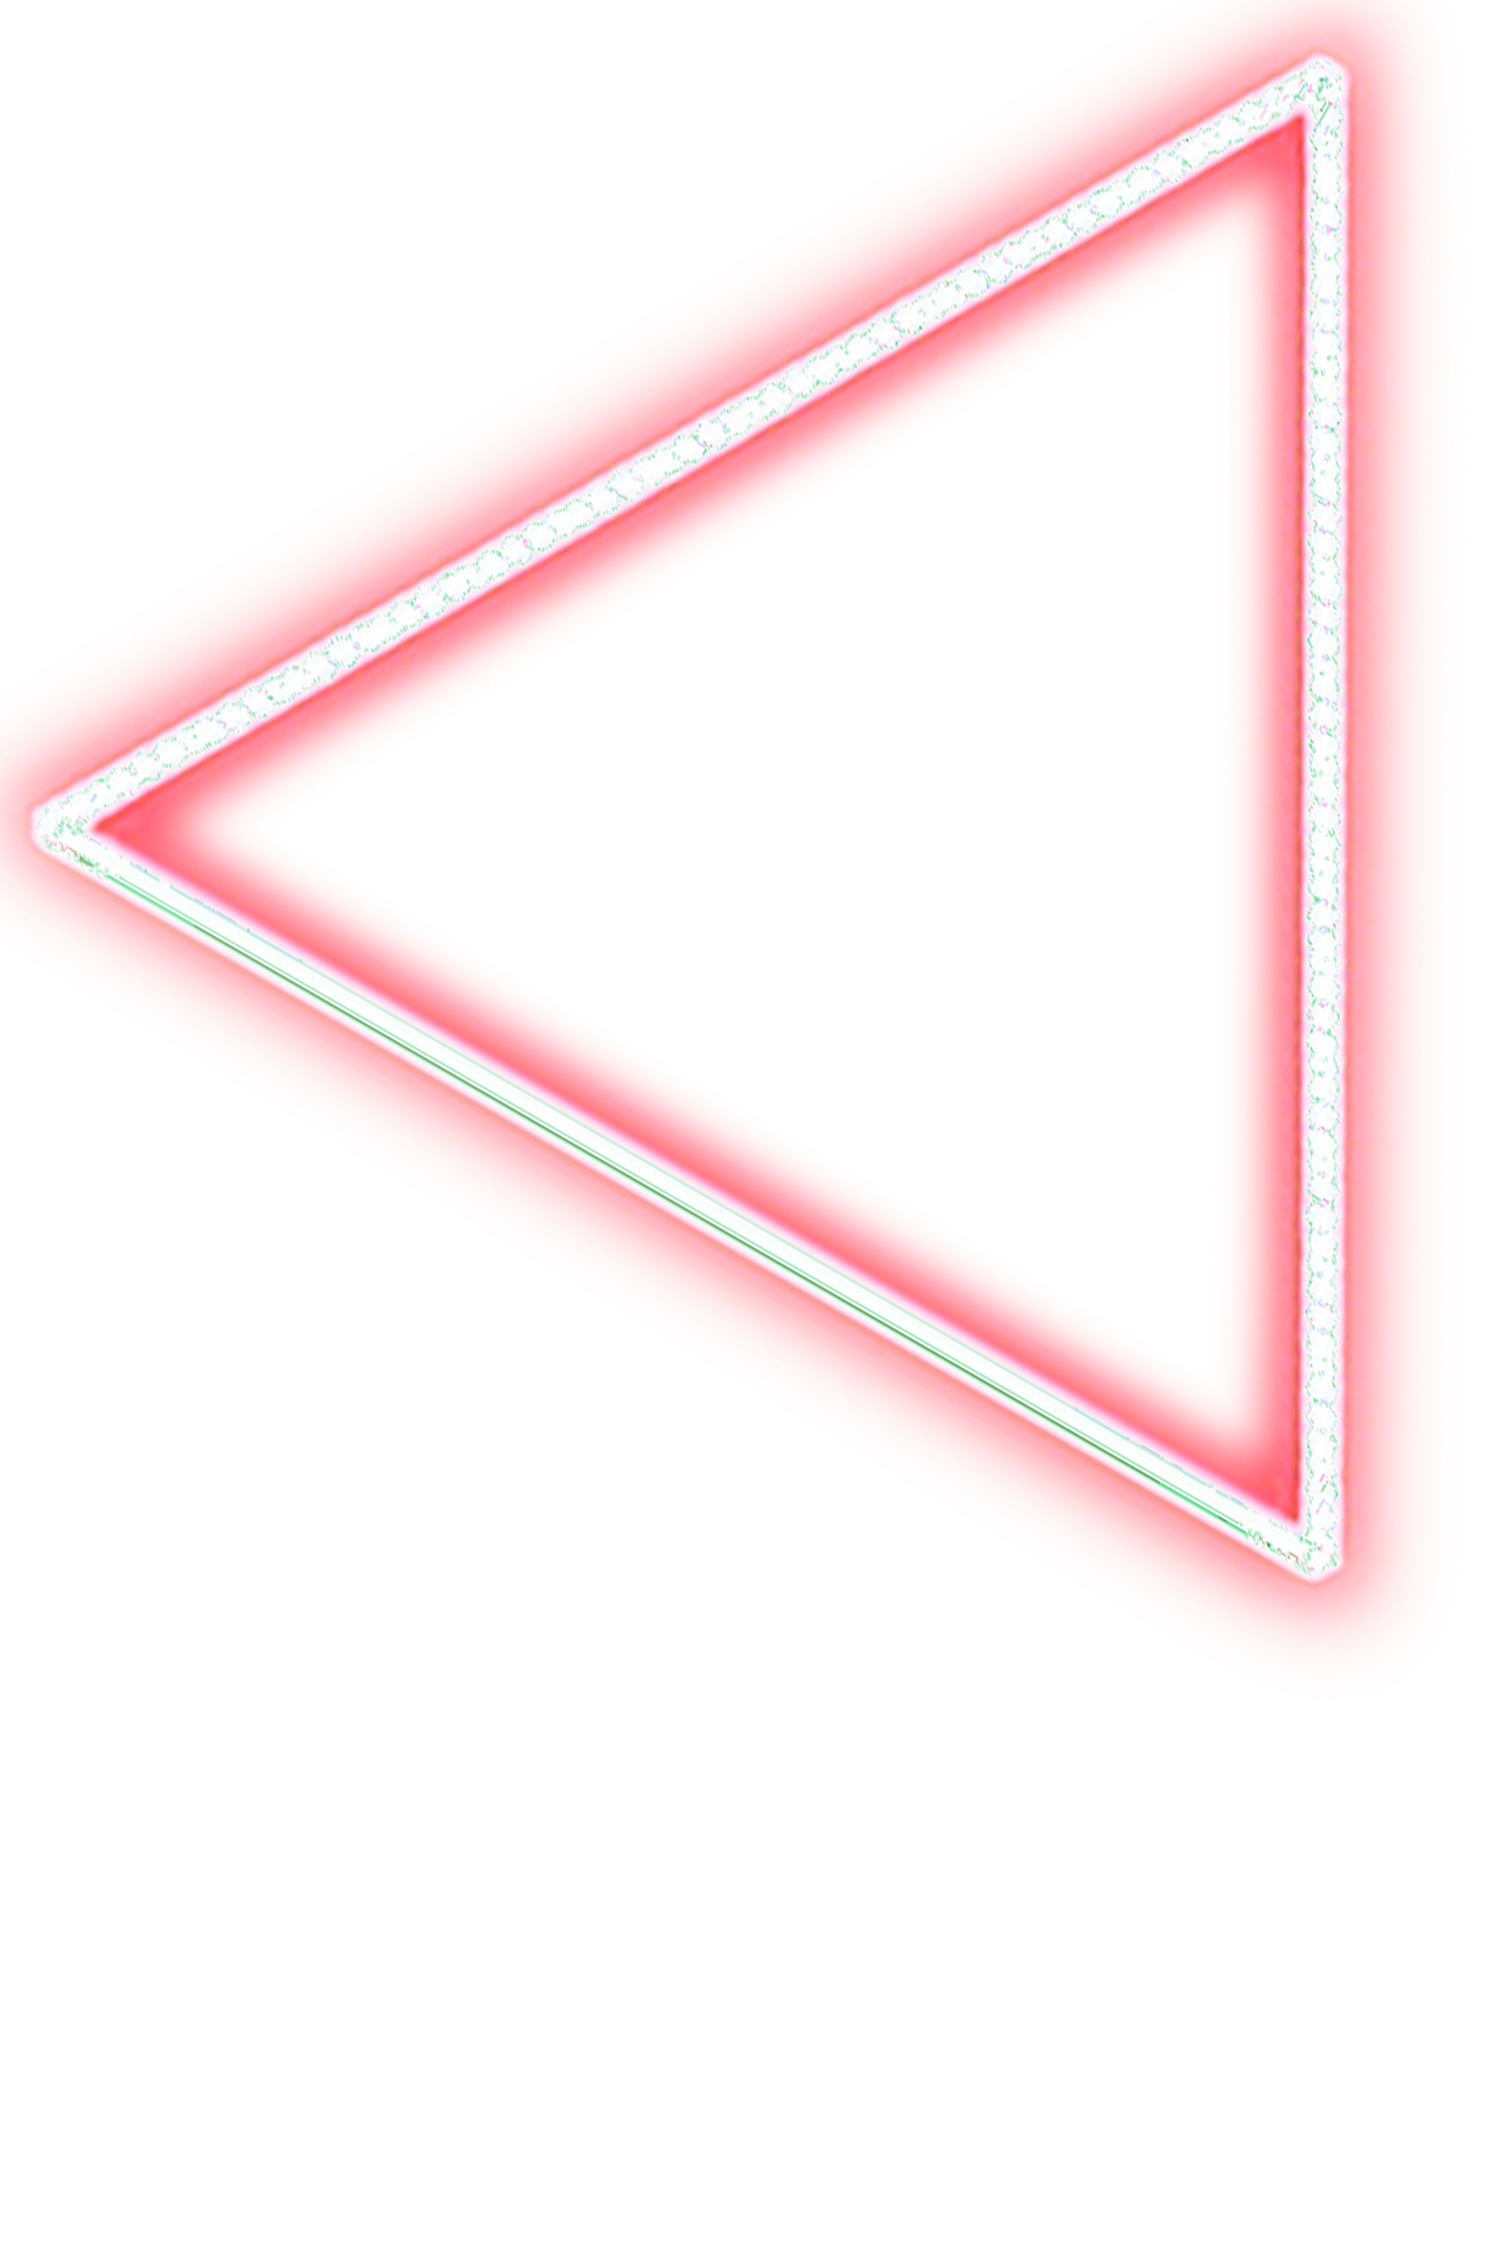 Neon Triangle Transparent & PNG Clipart Free Download - YA-webdesign